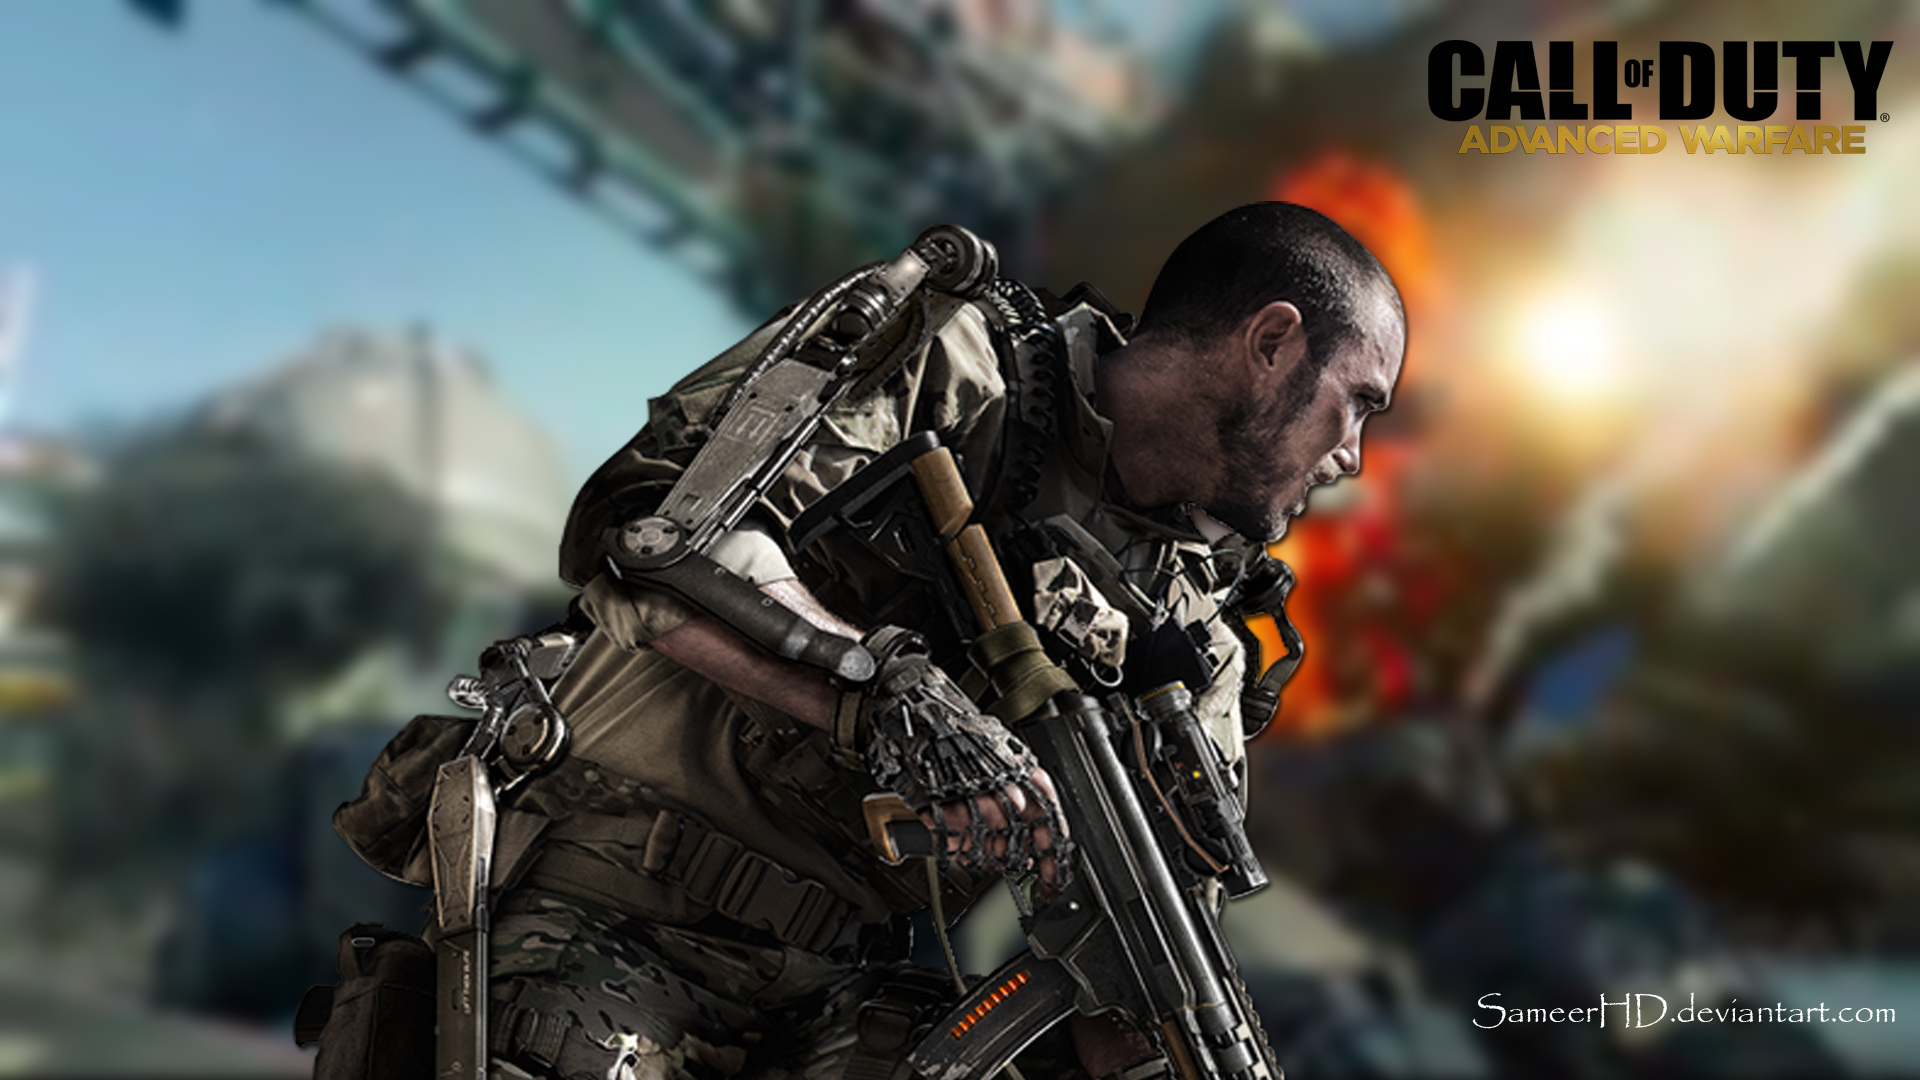 Awesome Call Of Duty Advanced Warfare Images Collection Call Of